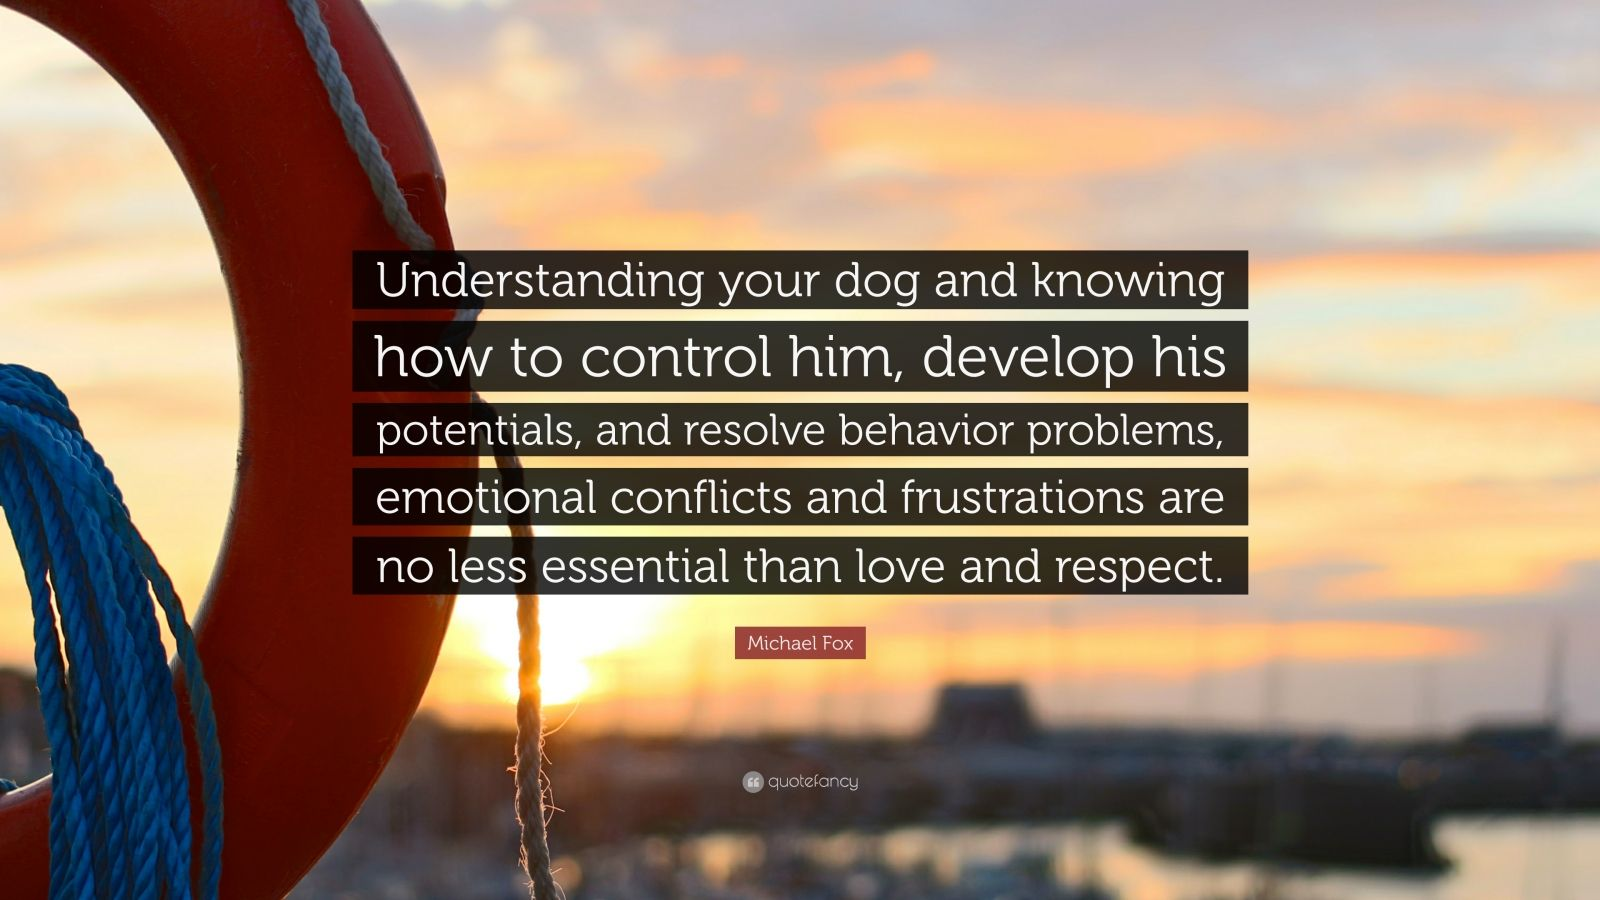 """Michael Fox Quote: """"Understanding your dog and knowing how to control him, develop his potentials, and resolve behavior problems, emotional conflicts and frustrations are no less essential than love and respect."""""""